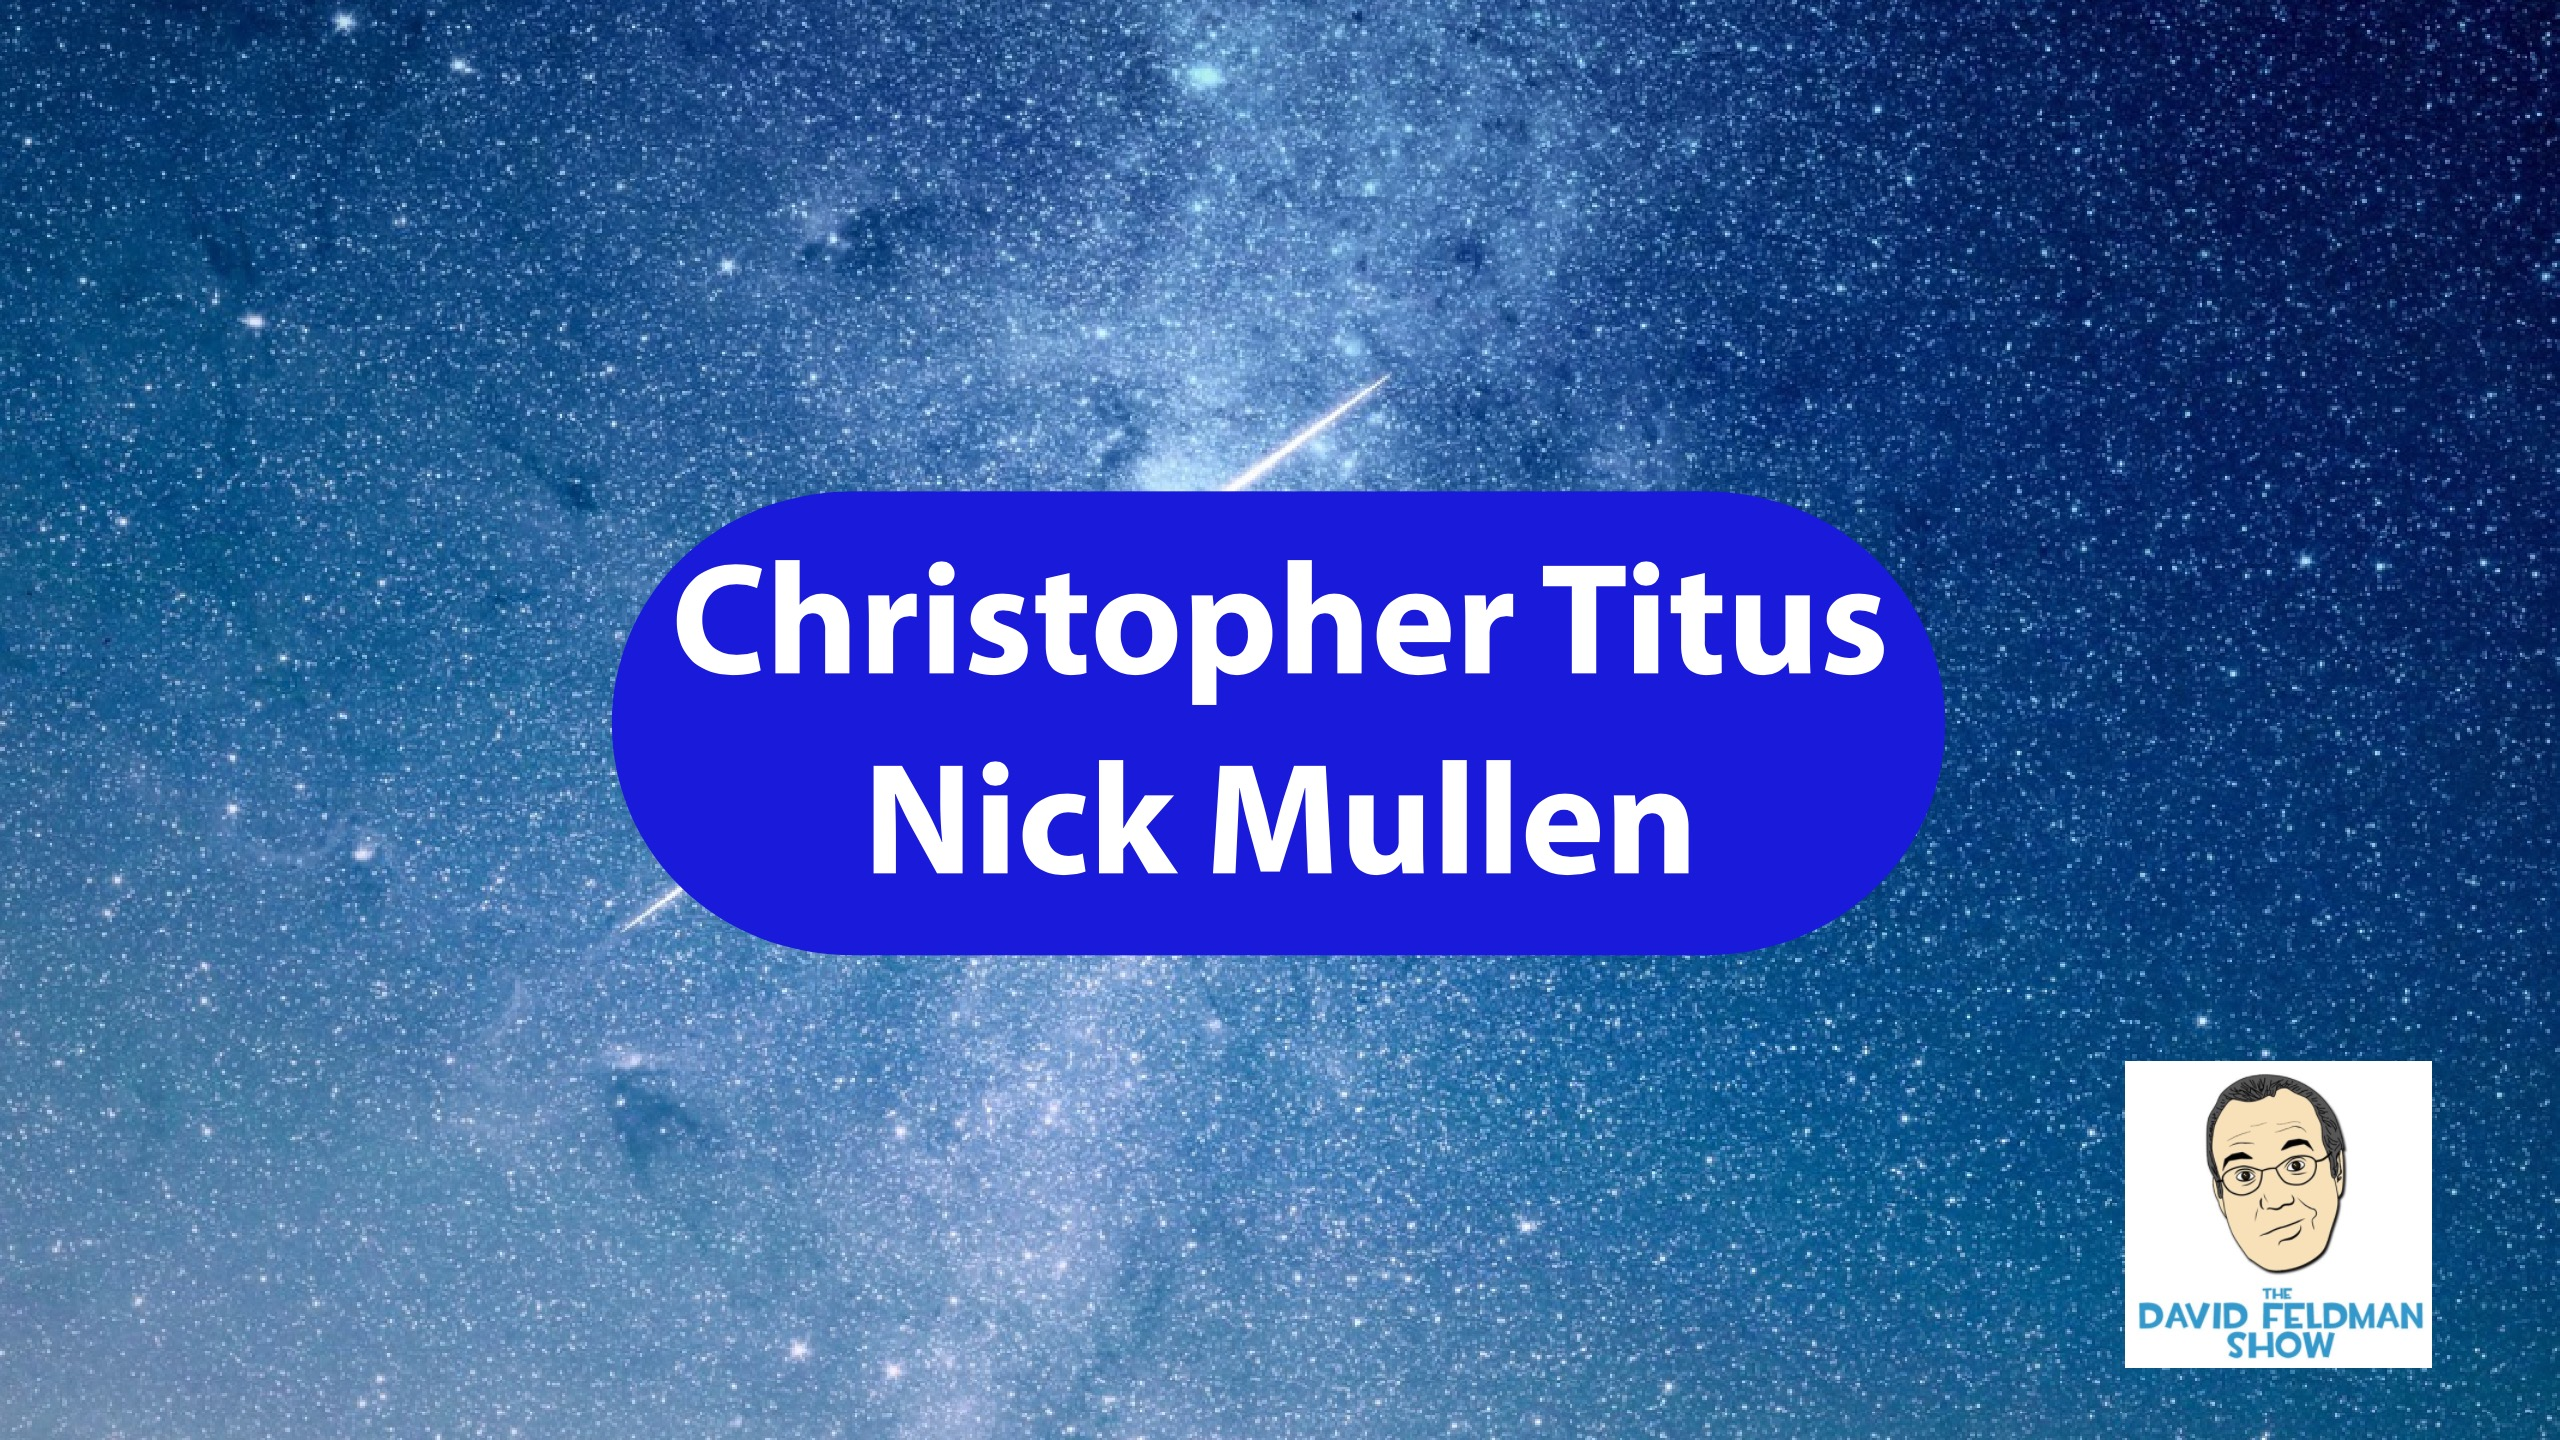 Christopher Titus and Nick Mullen